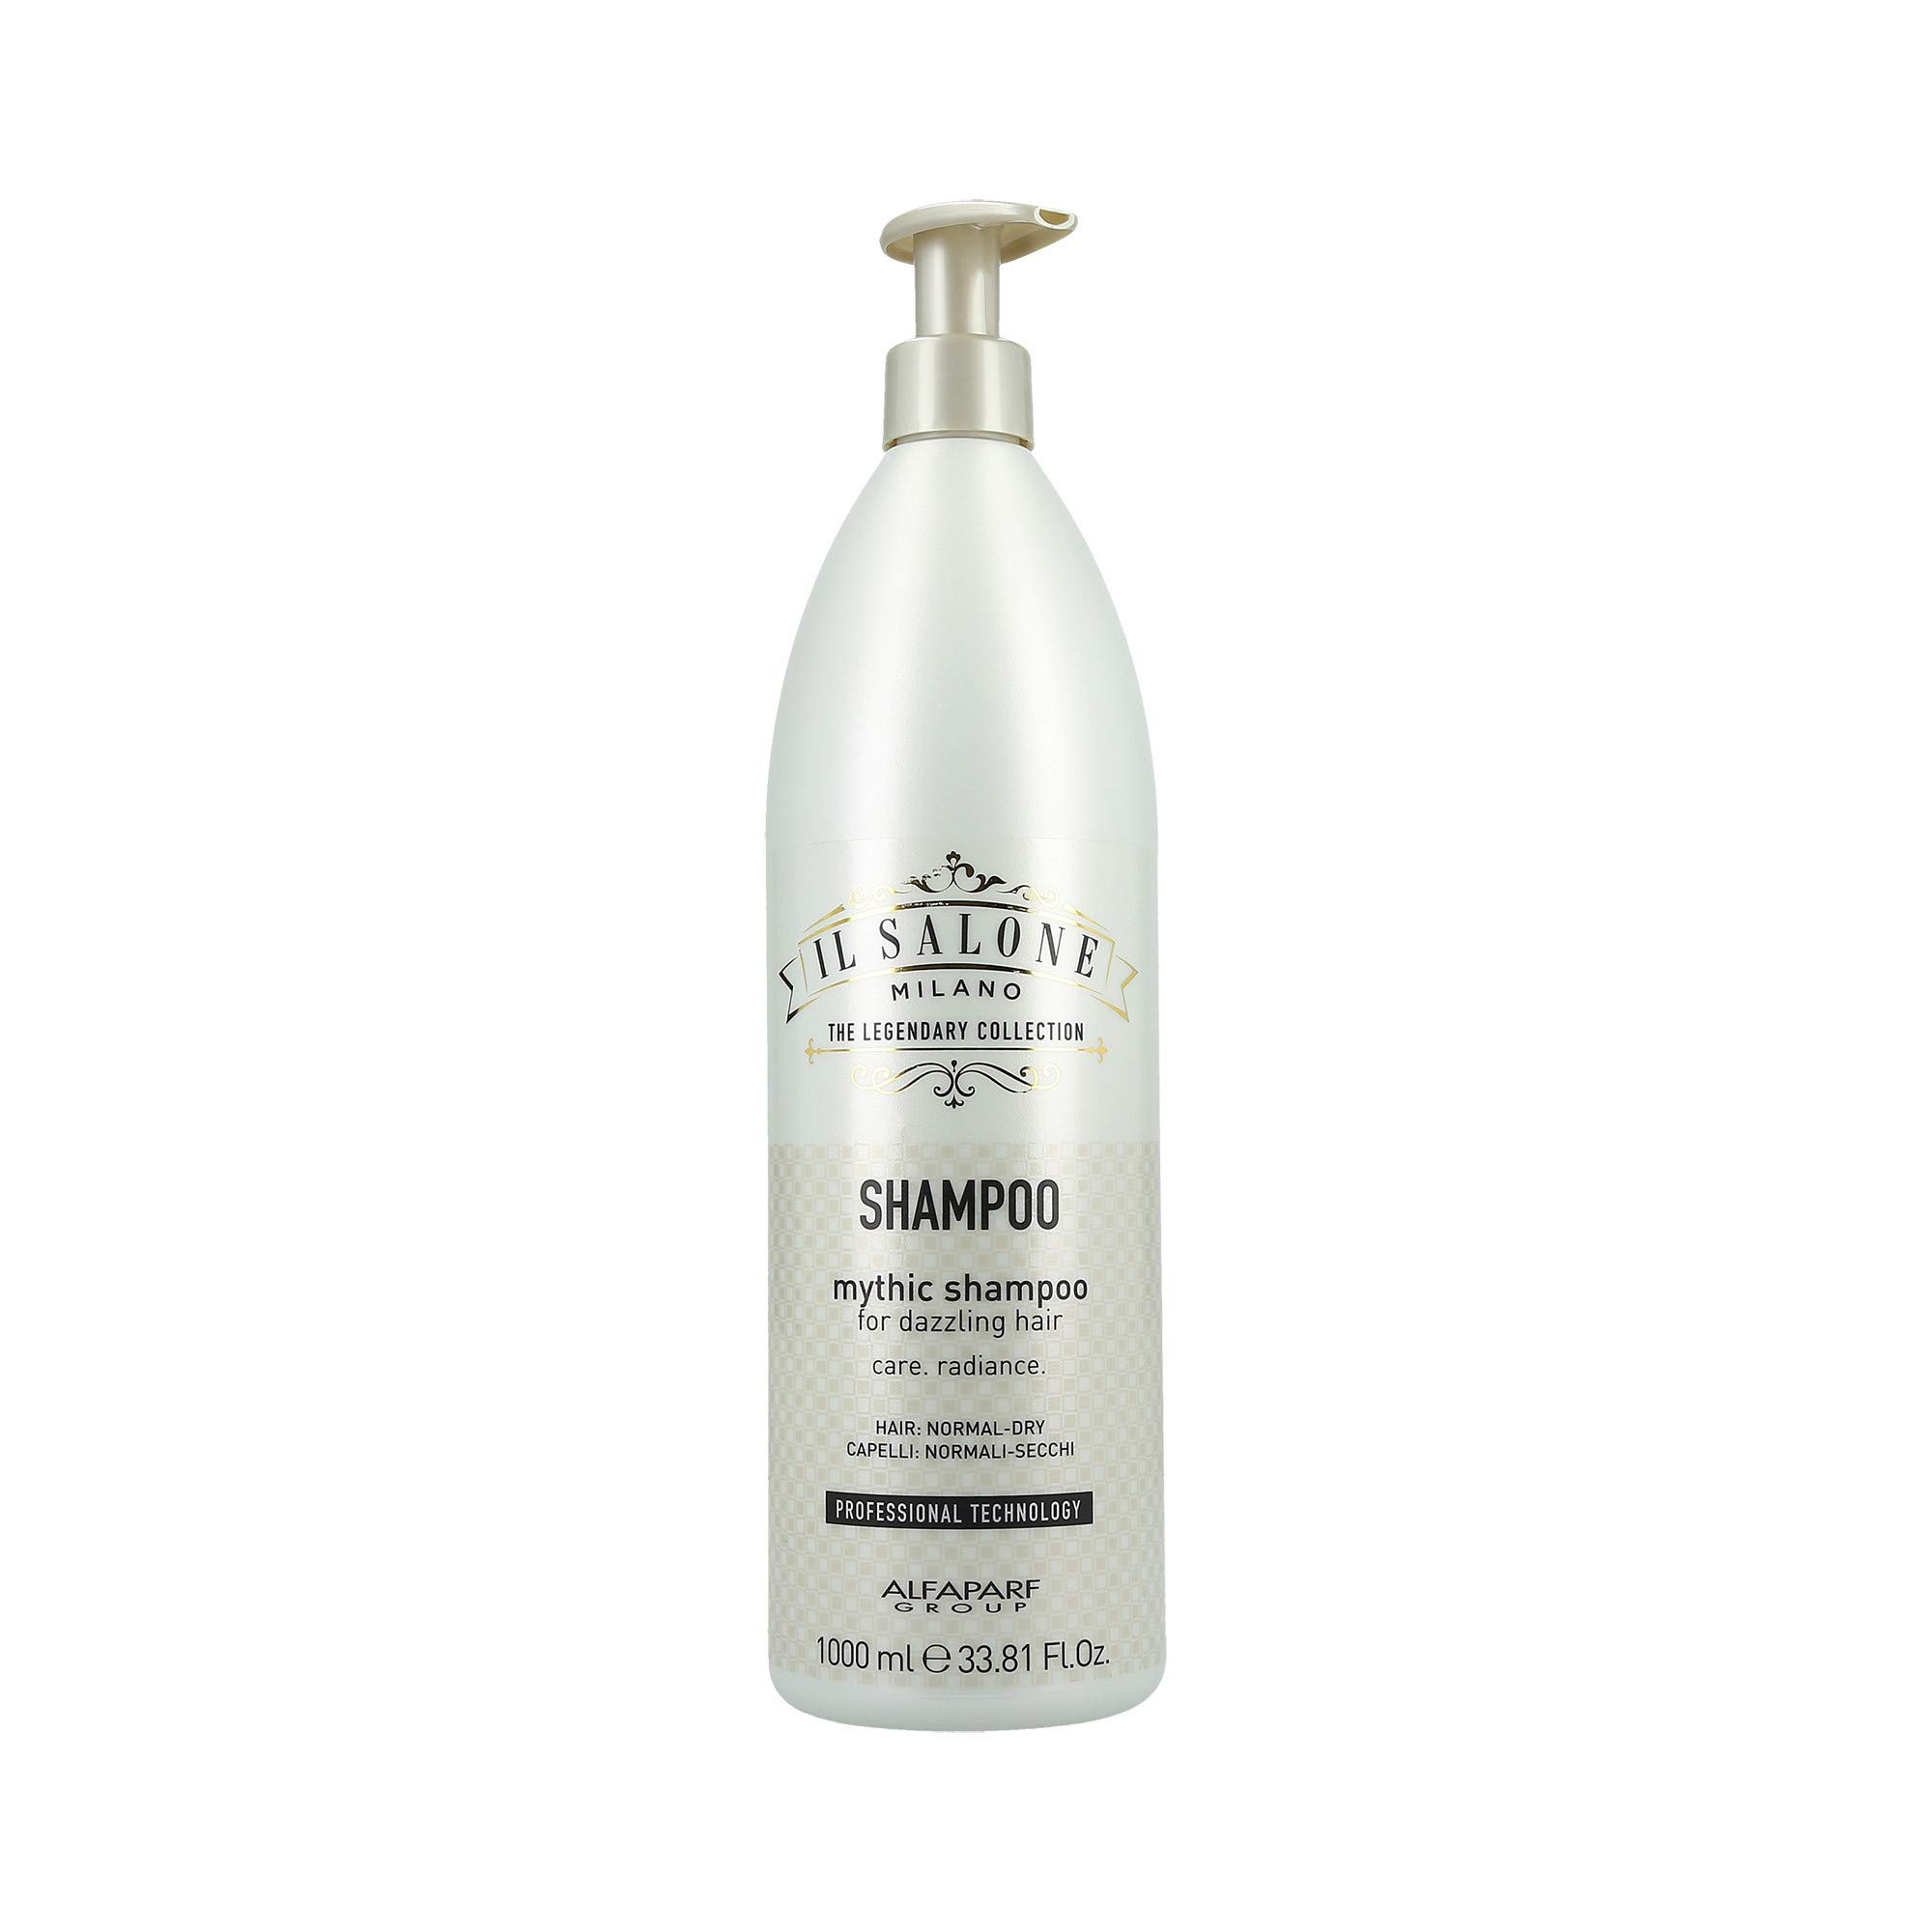 Il Salone Milano Professional Mythic Shampoo for Normal to Dry Hair - Moisturizes and Adds Shine - Premium Quality - 33.81 Fl. Oz. / 1000ml by Il Salone Milano